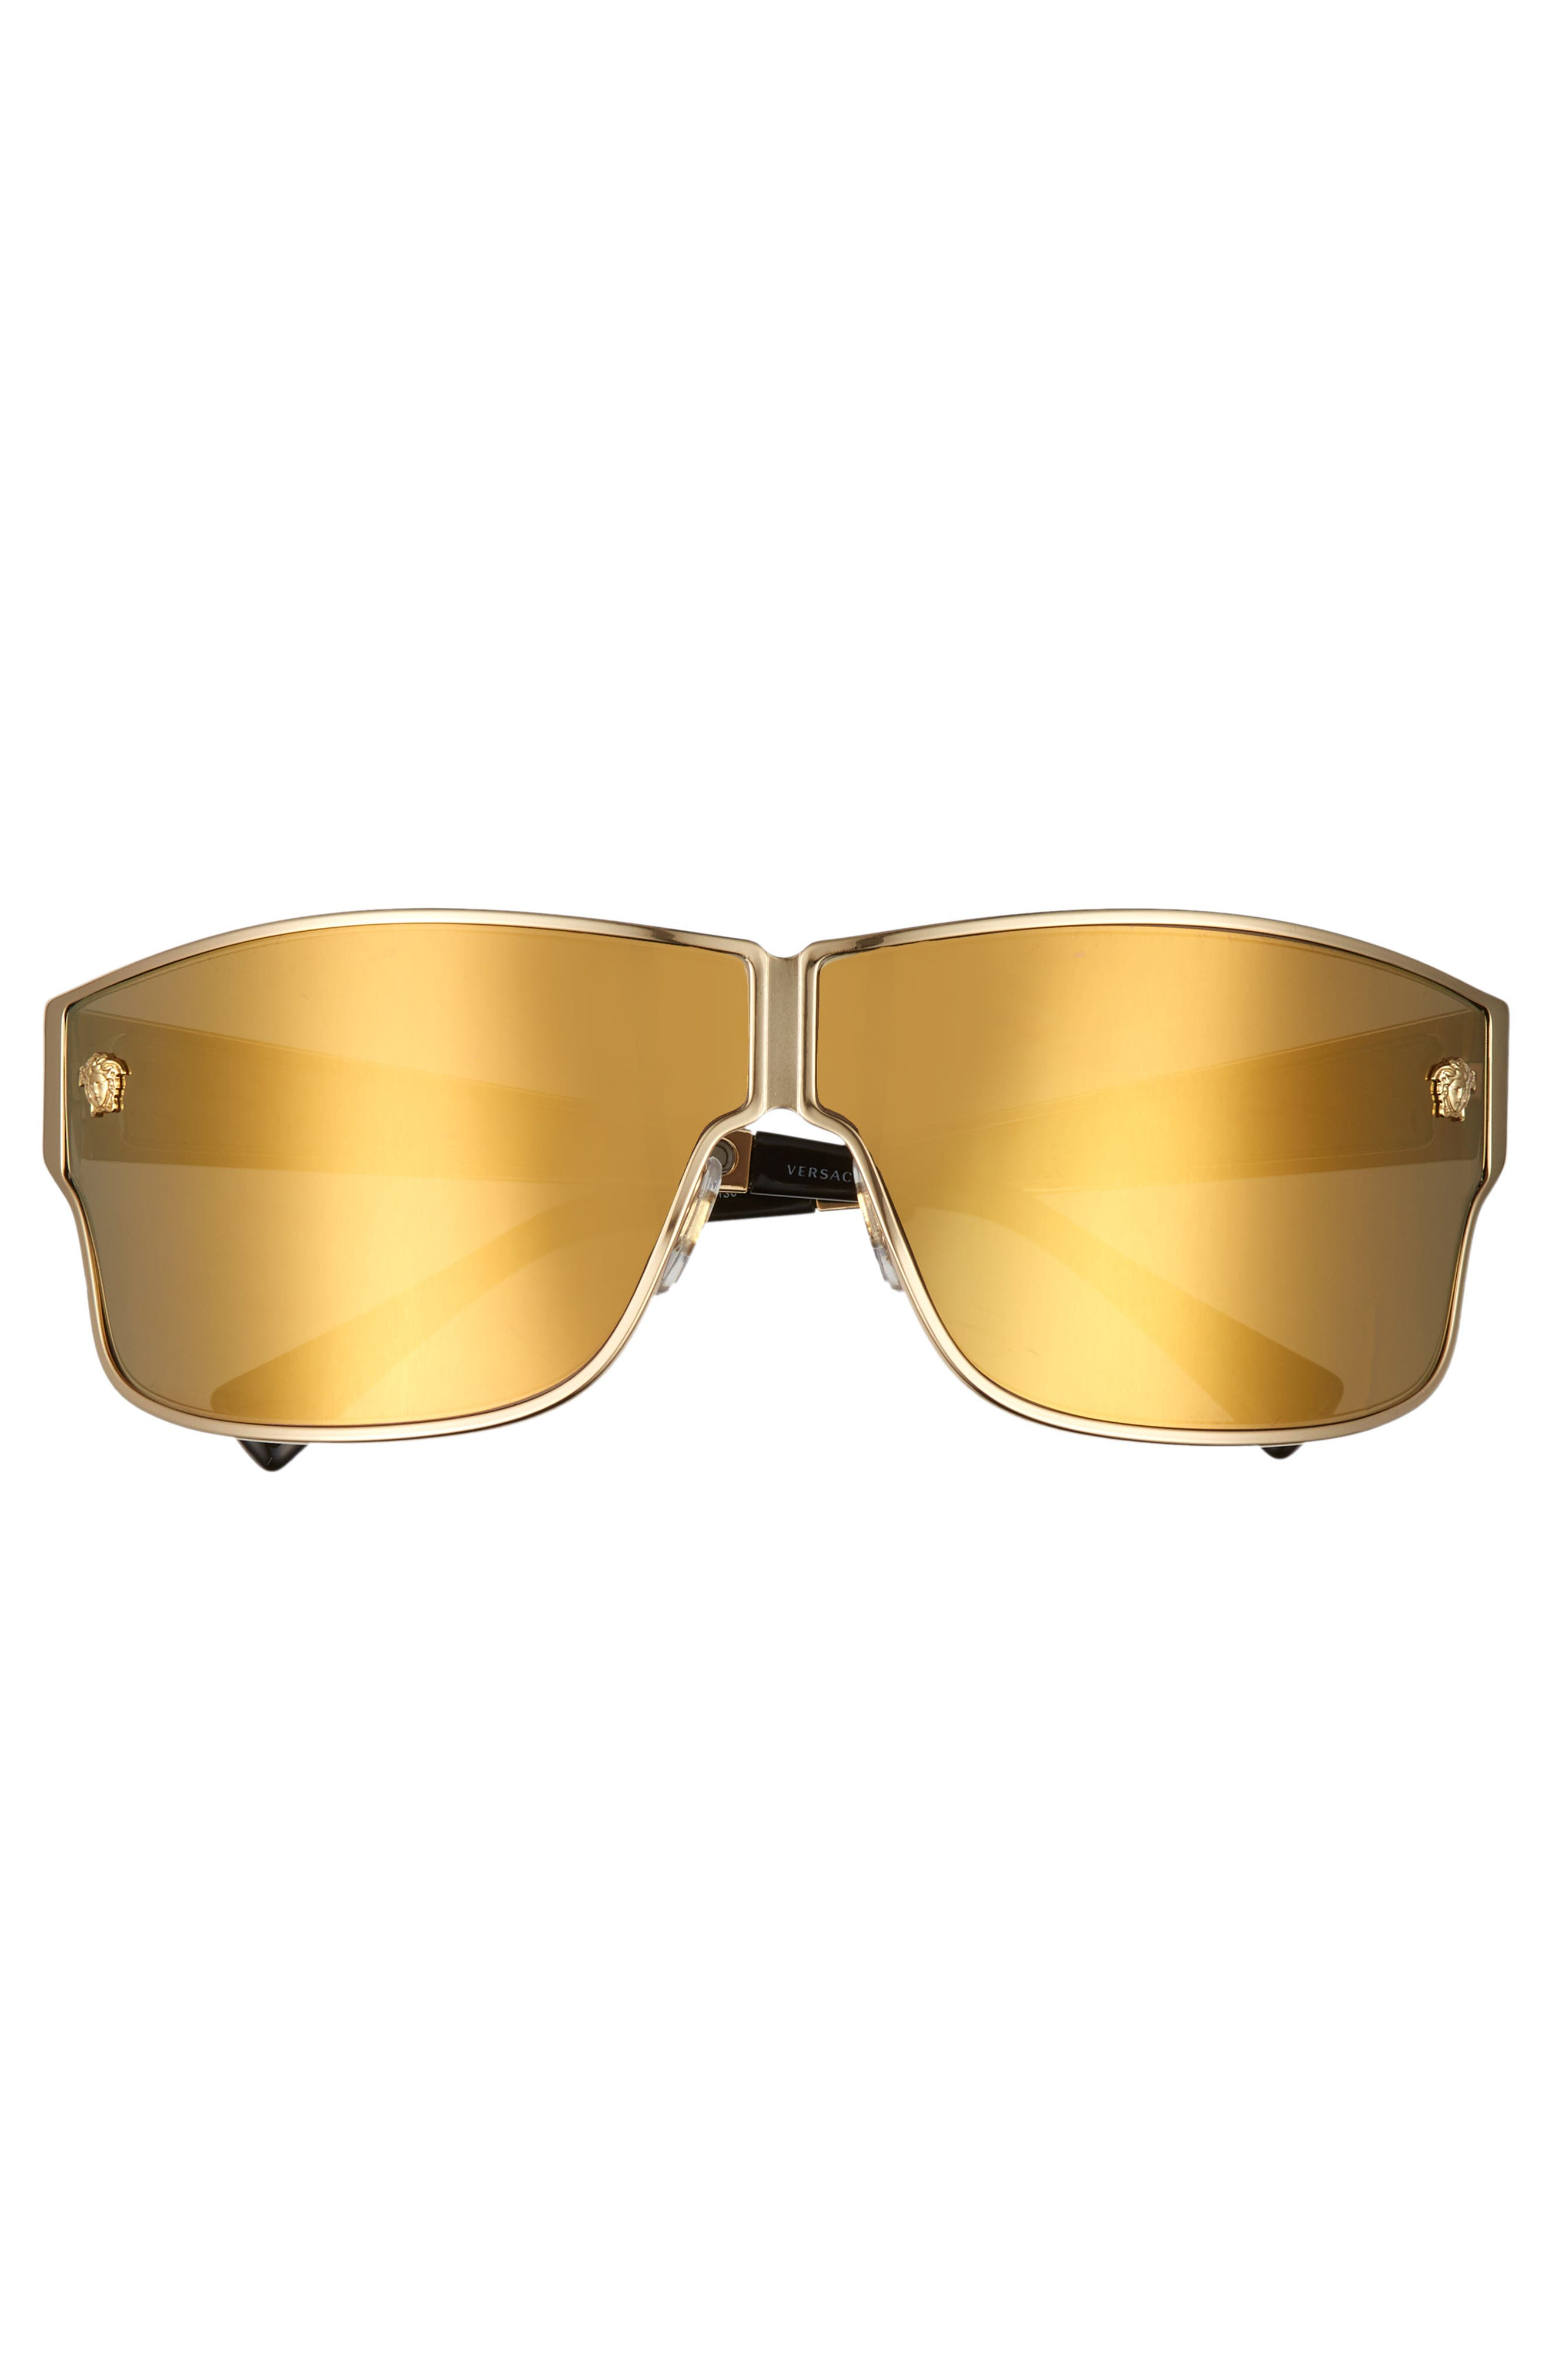 Medusa 72mm Mirrored Shield Sunglasses,                             Alternate thumbnail 3, color,                             GOLD/ GOLD MIRROR